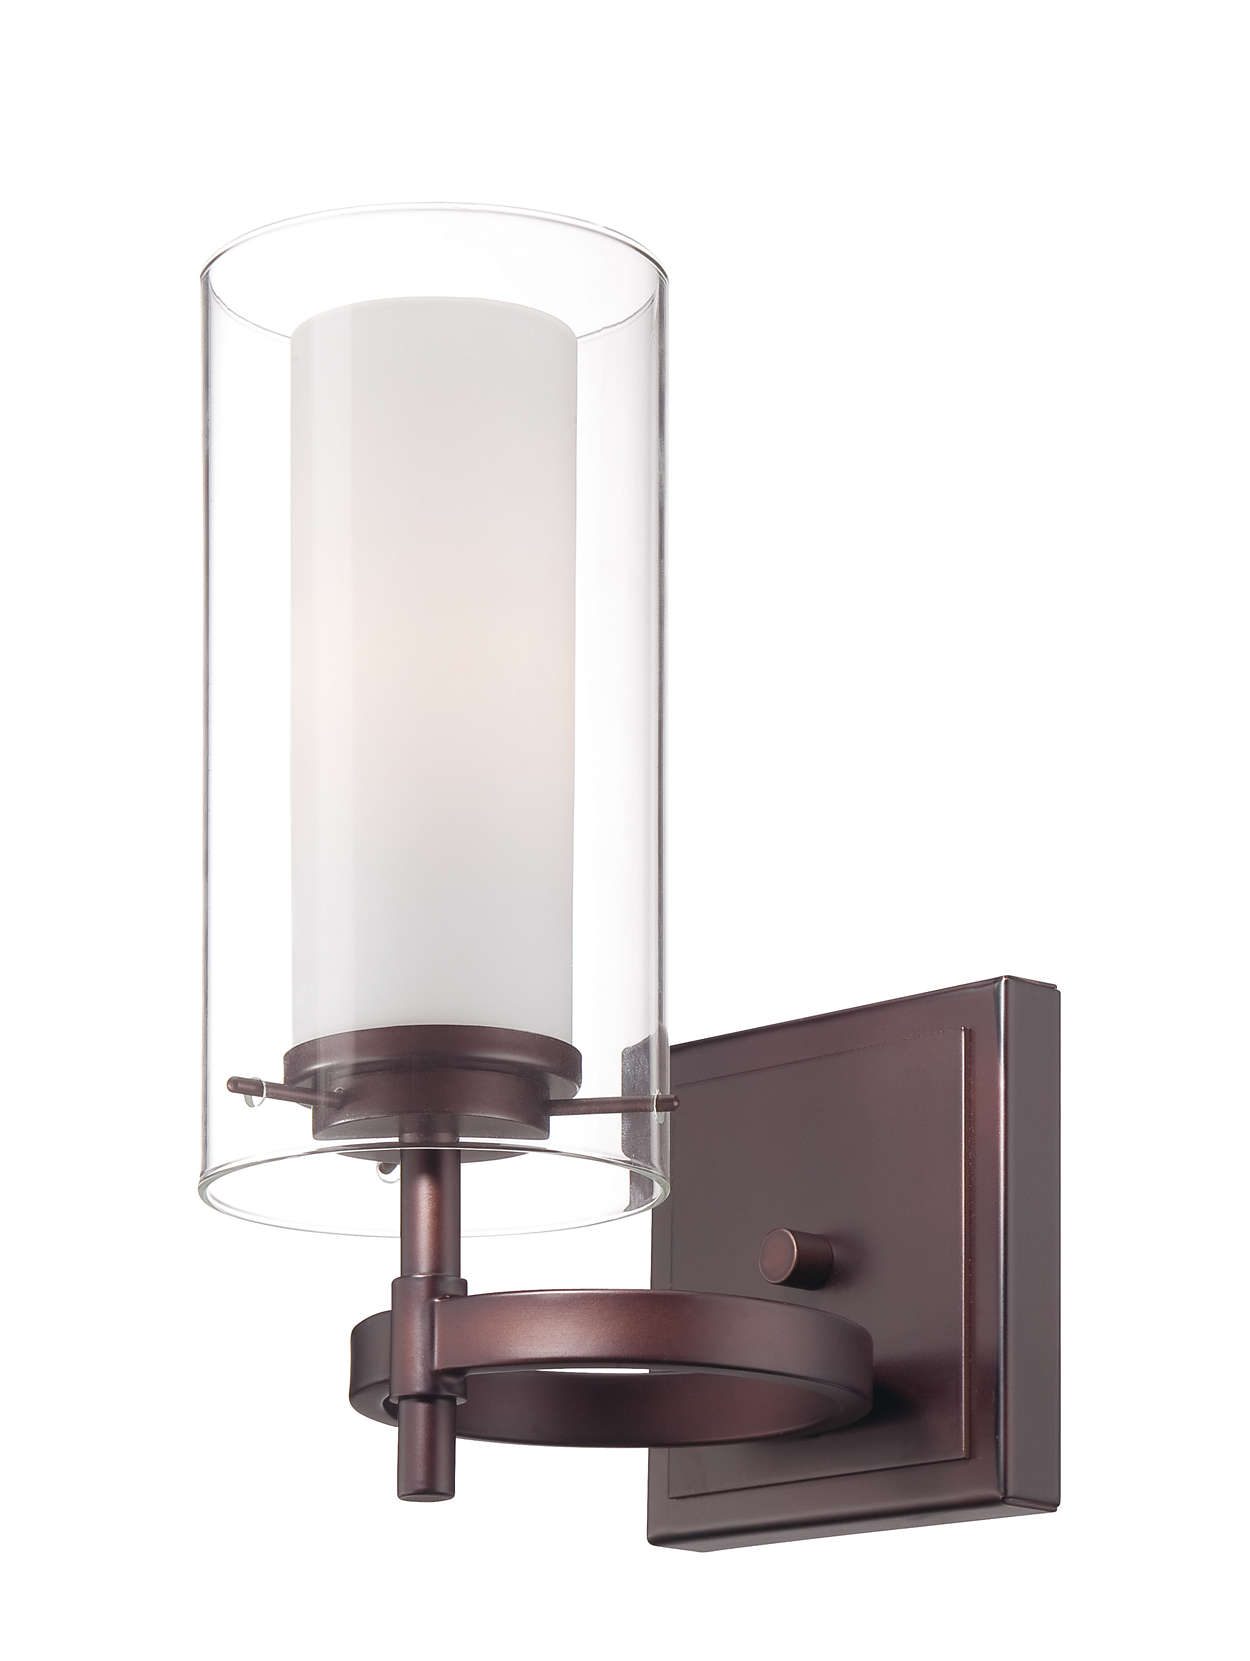 Hula 1-light wall sconce in Merlot Bronze finish